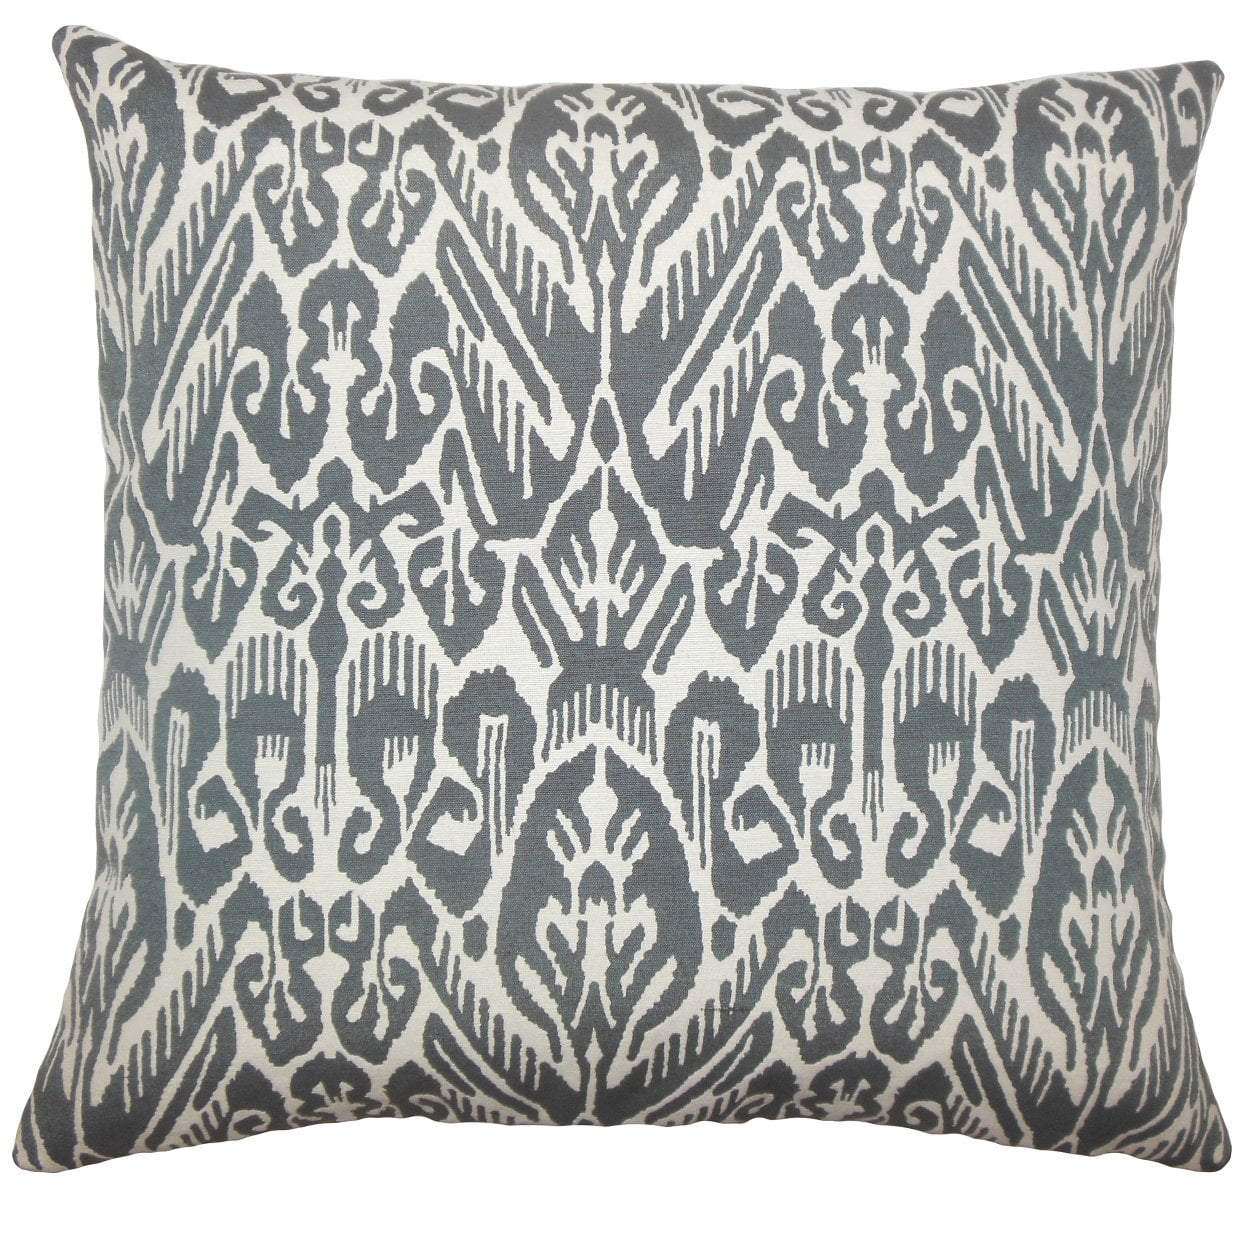 Gray Cotton Ikat Boho Throw Pillow Cover